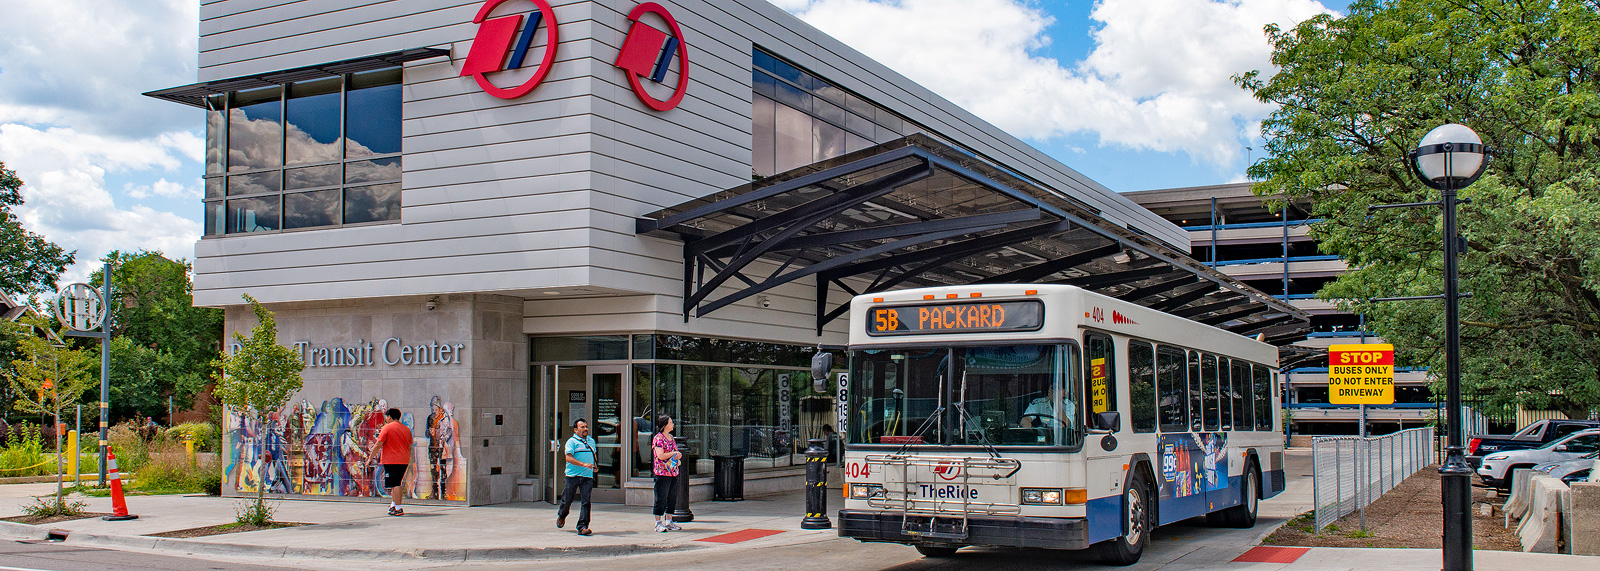 Blake Transit Center in Ann Arbor